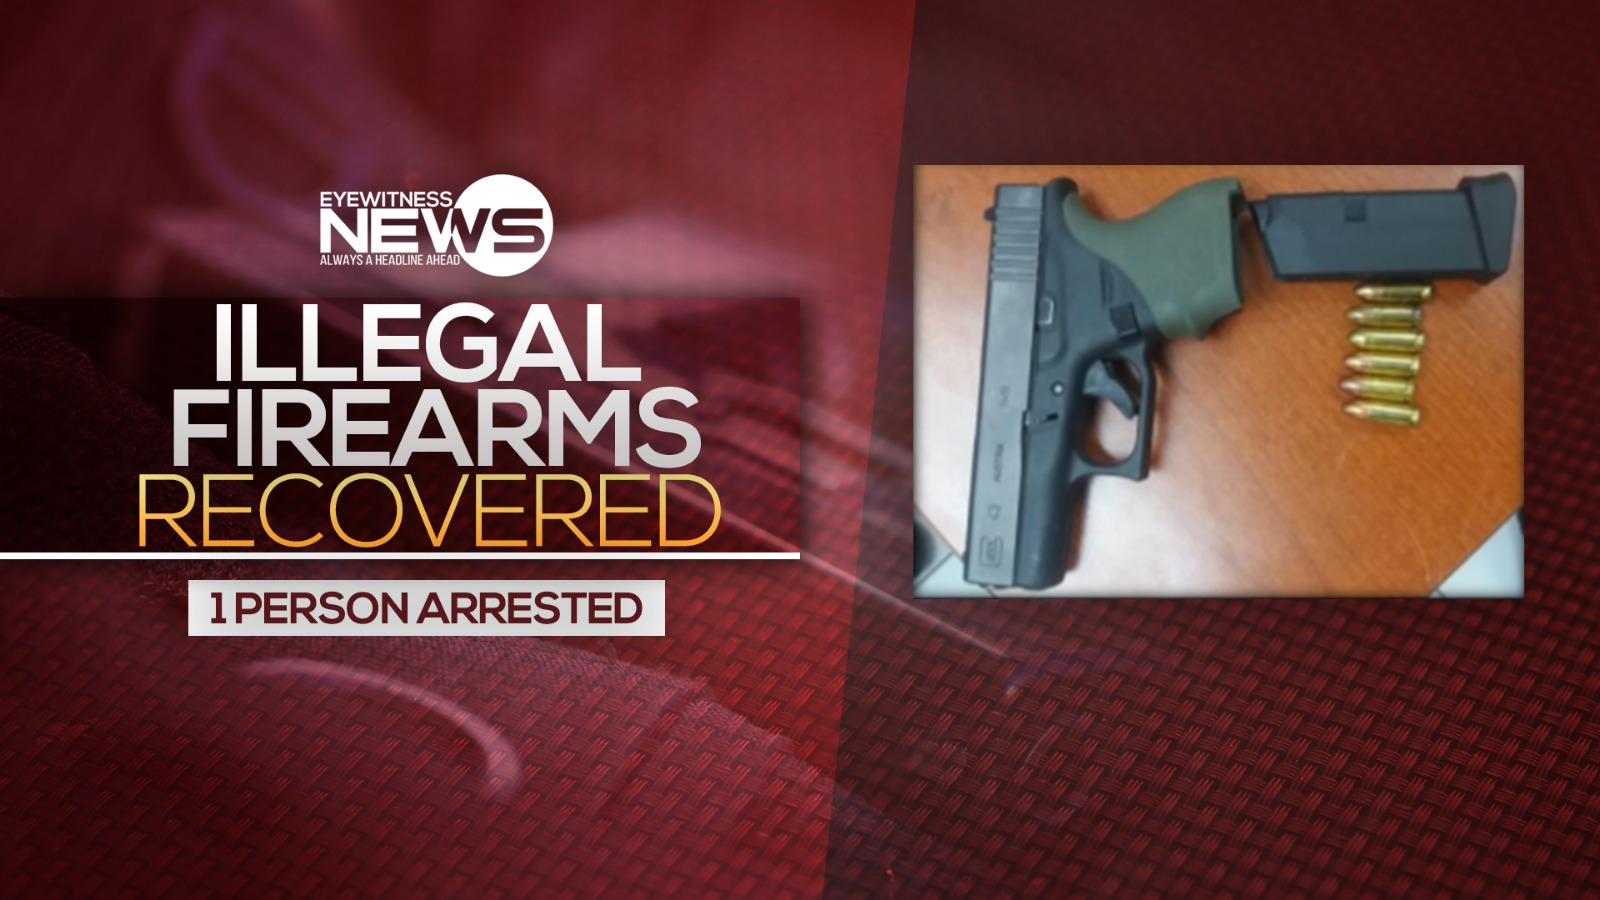 Police recover illegal firearms in separate incidents